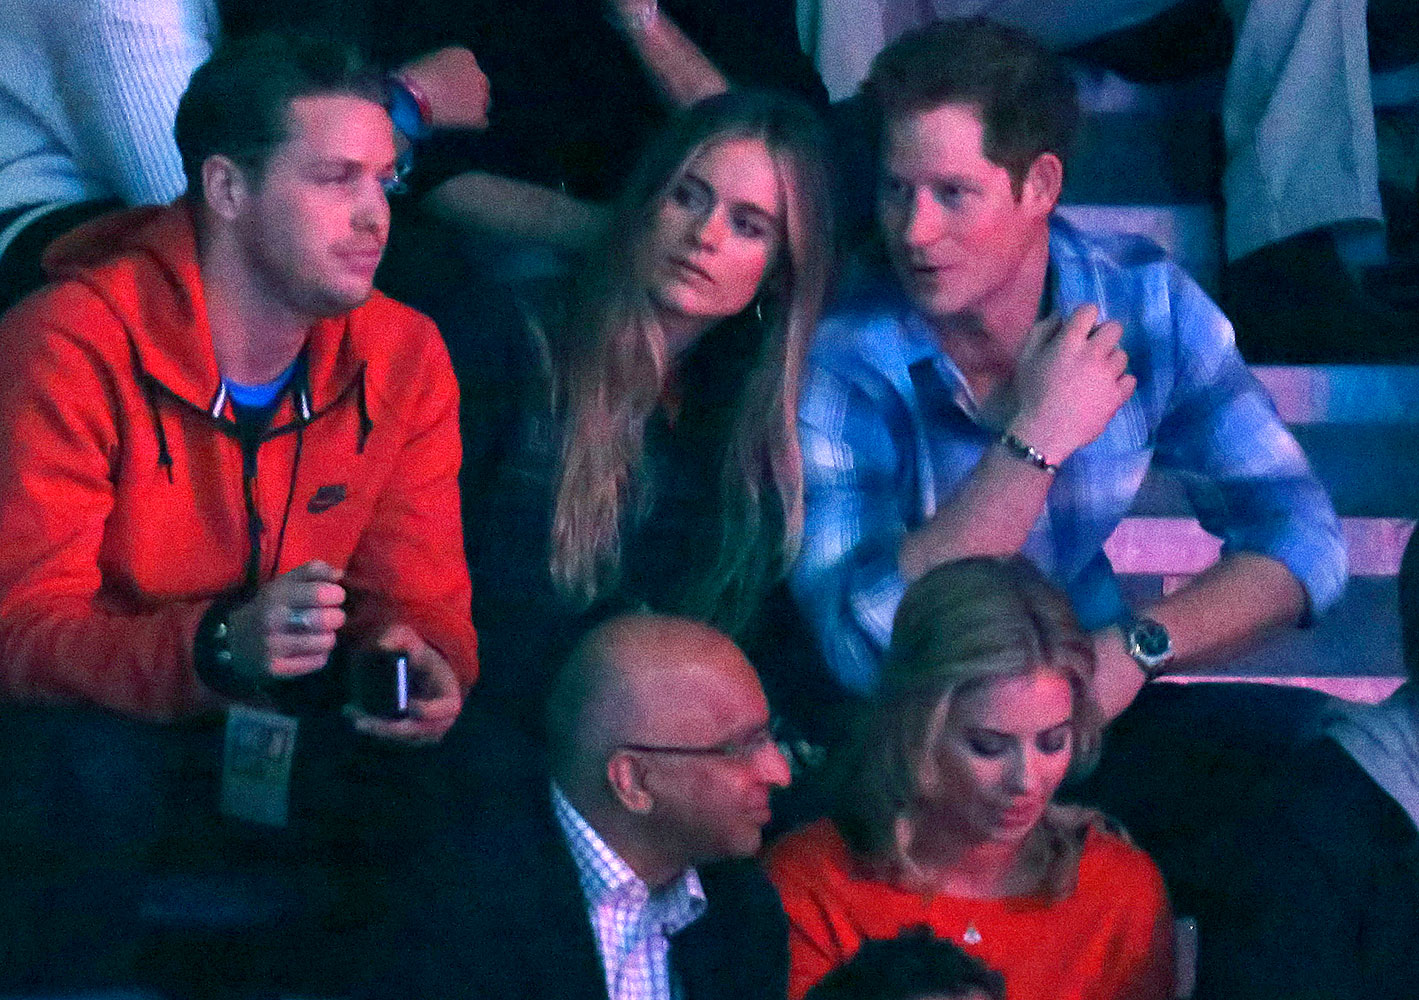 Britain's Prince Harry (R) and Cressida Bonas (2nd R) watch the WE Day UK event at Wembley Arena in London March 7, 2014.